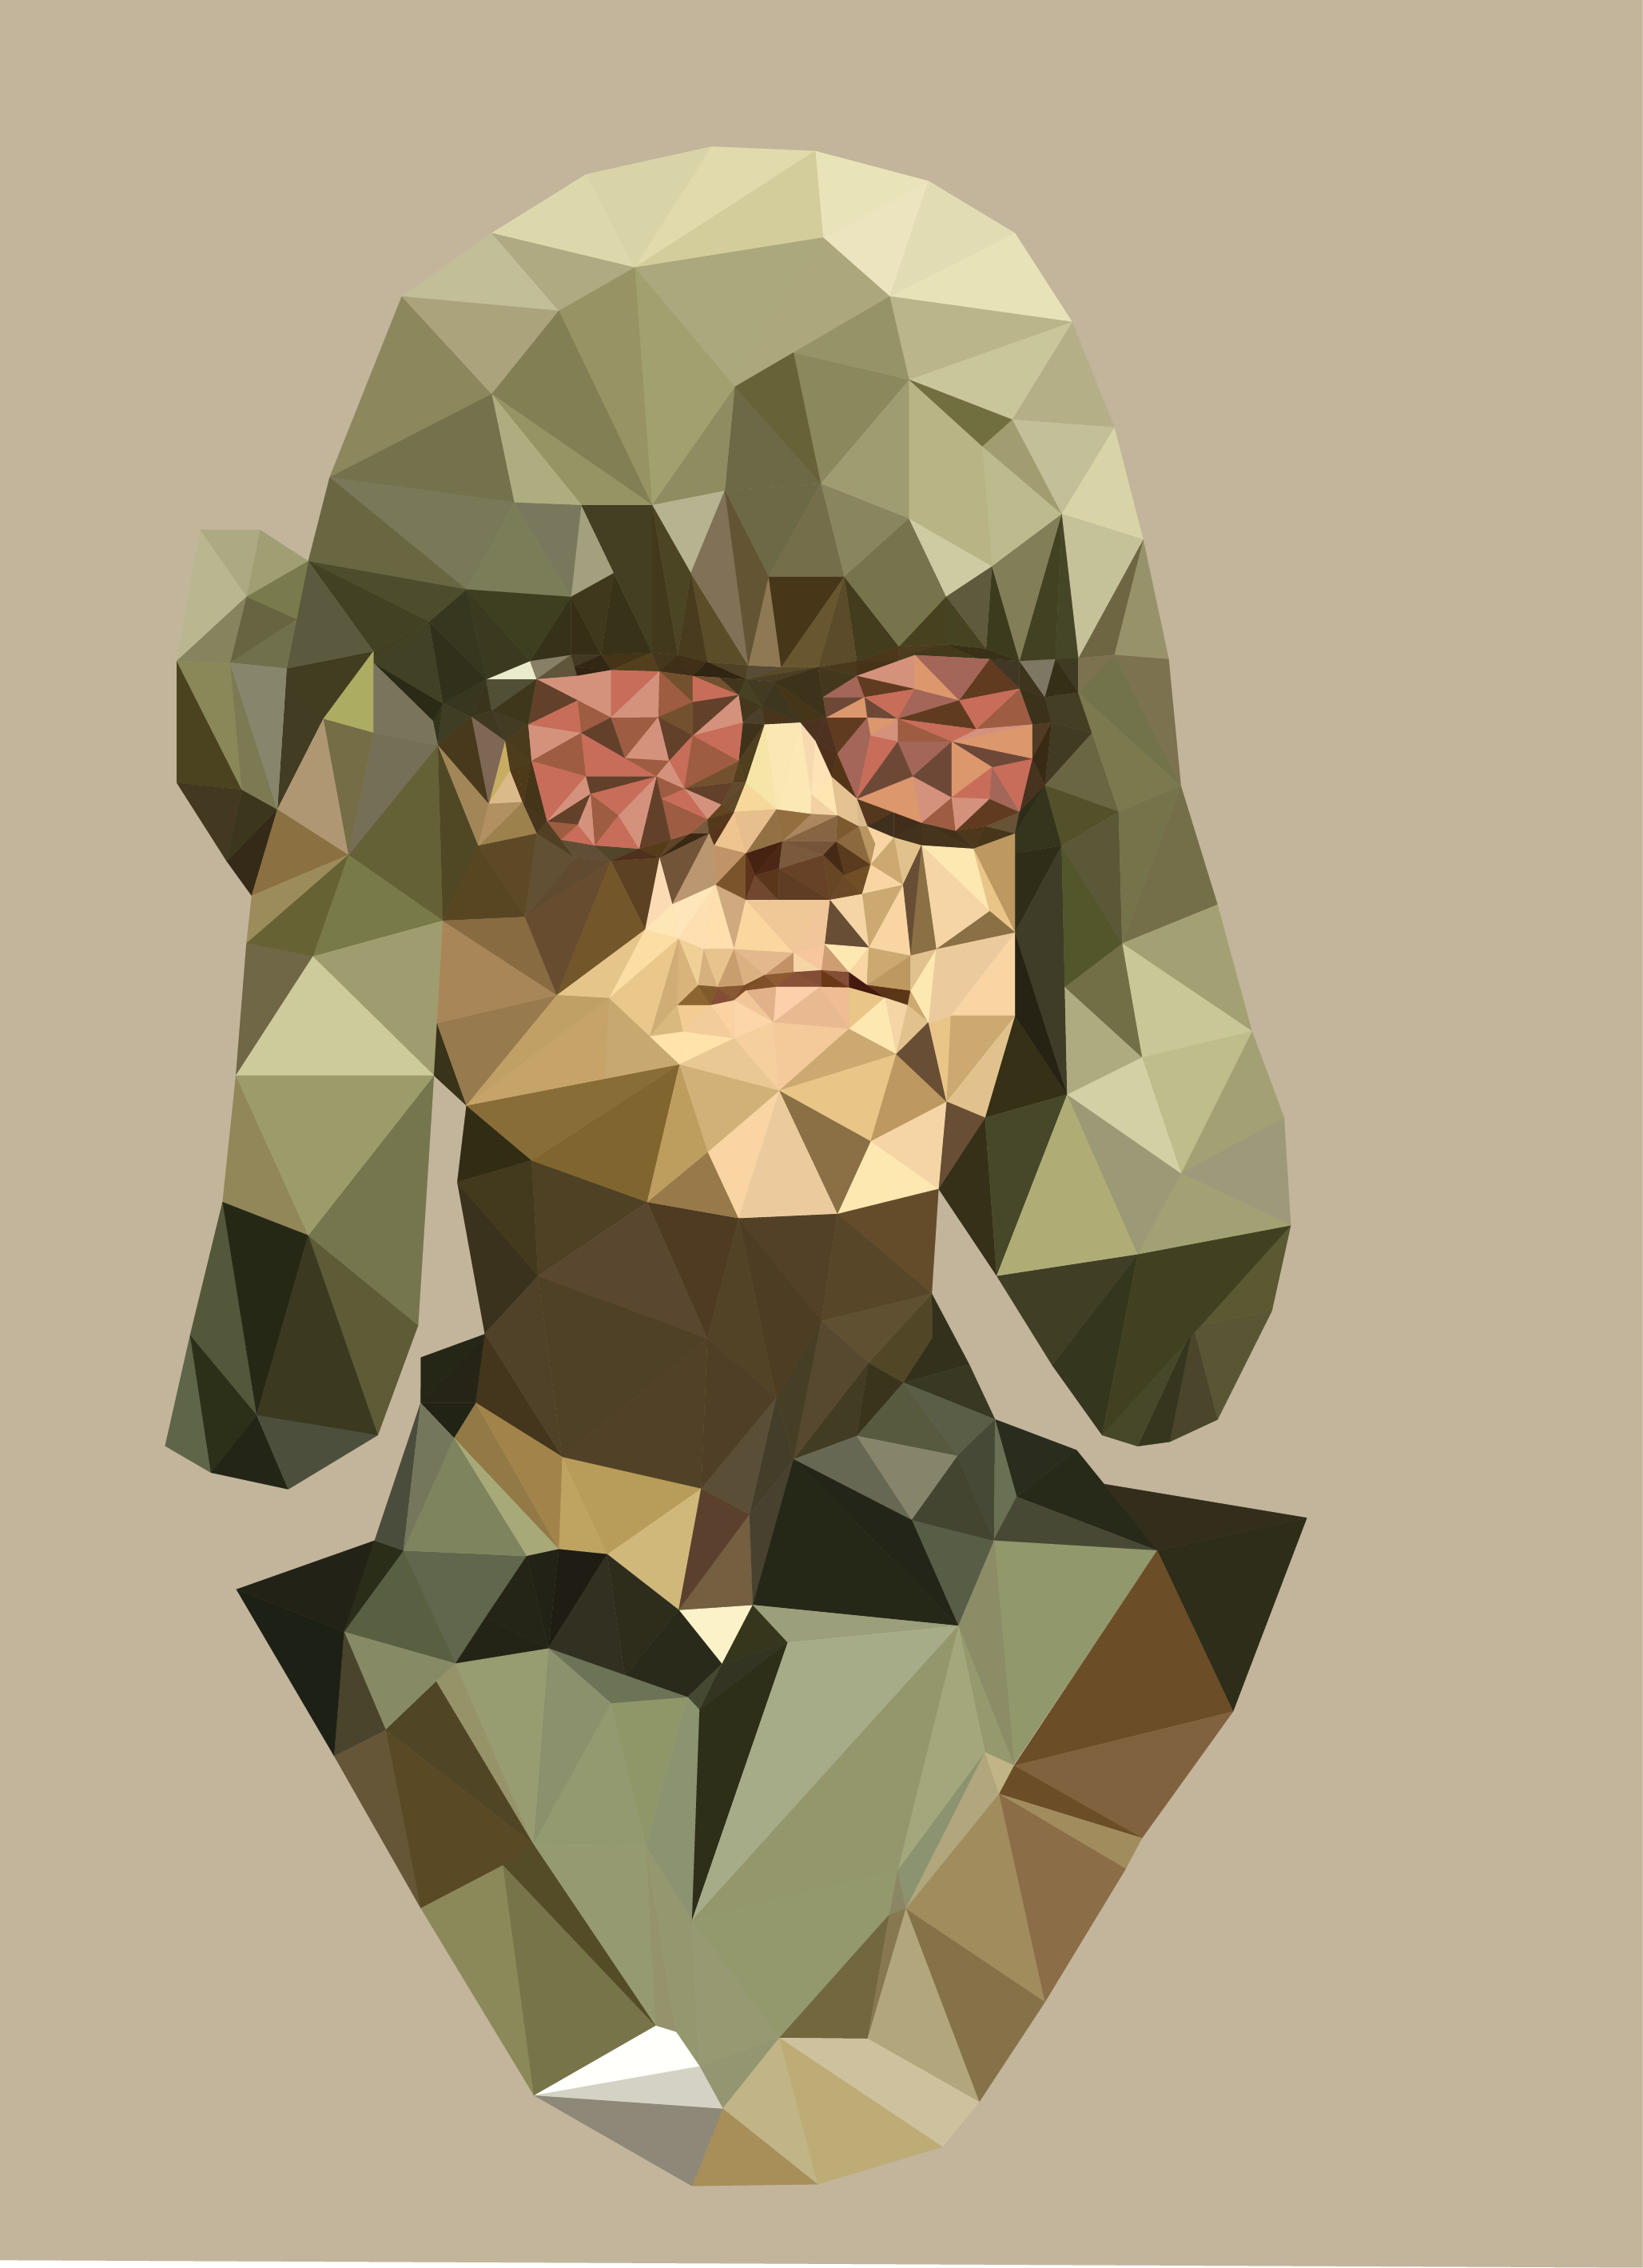 Create a hd low poly pic of you